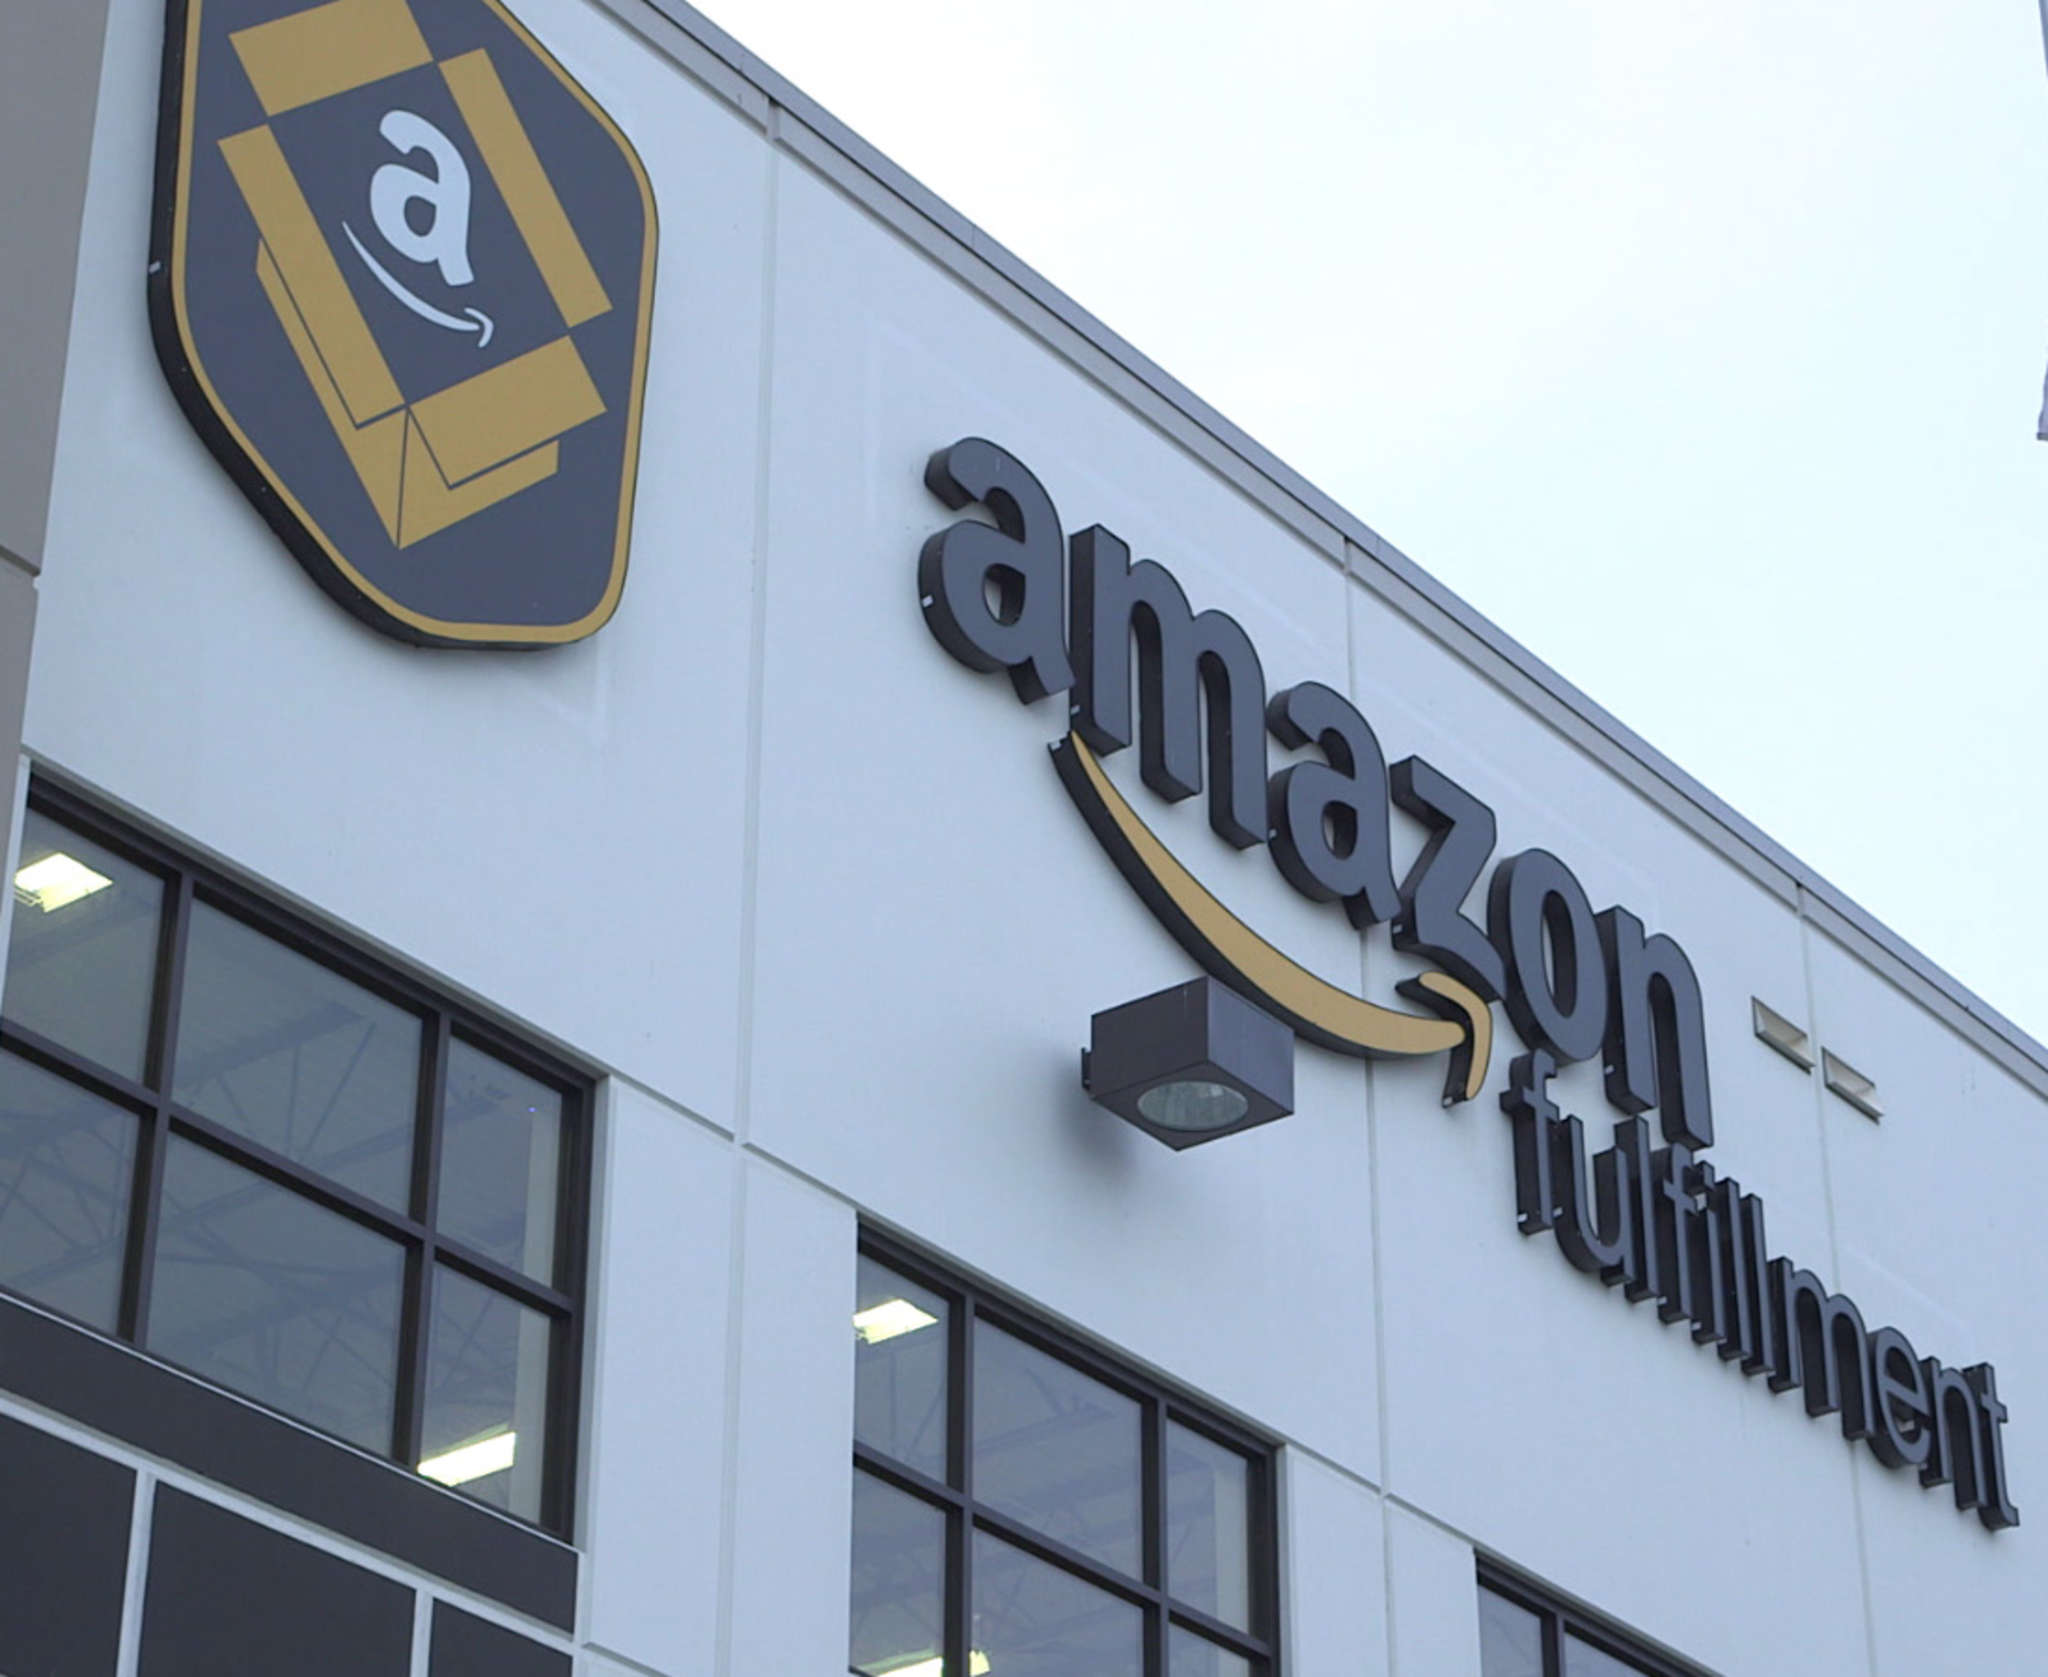 Amazon runs 13 warehouses and distribution centers in Pennsylvania, which says the company has committed to spending $150 million on new facilities. State grants are tied to job numbers.